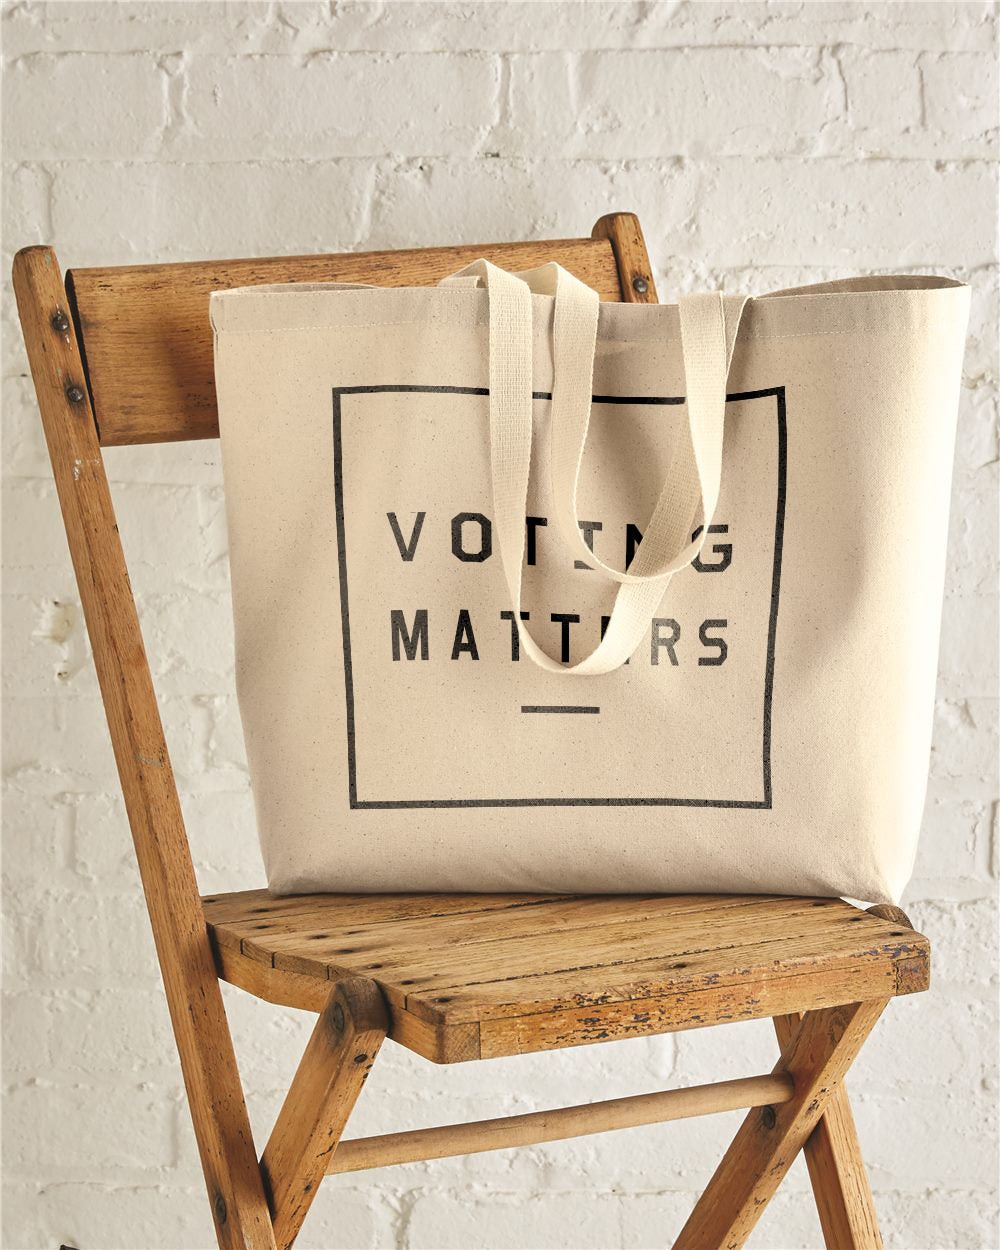 Voting Matters Jumbo Cotton Canvas Tote Bag